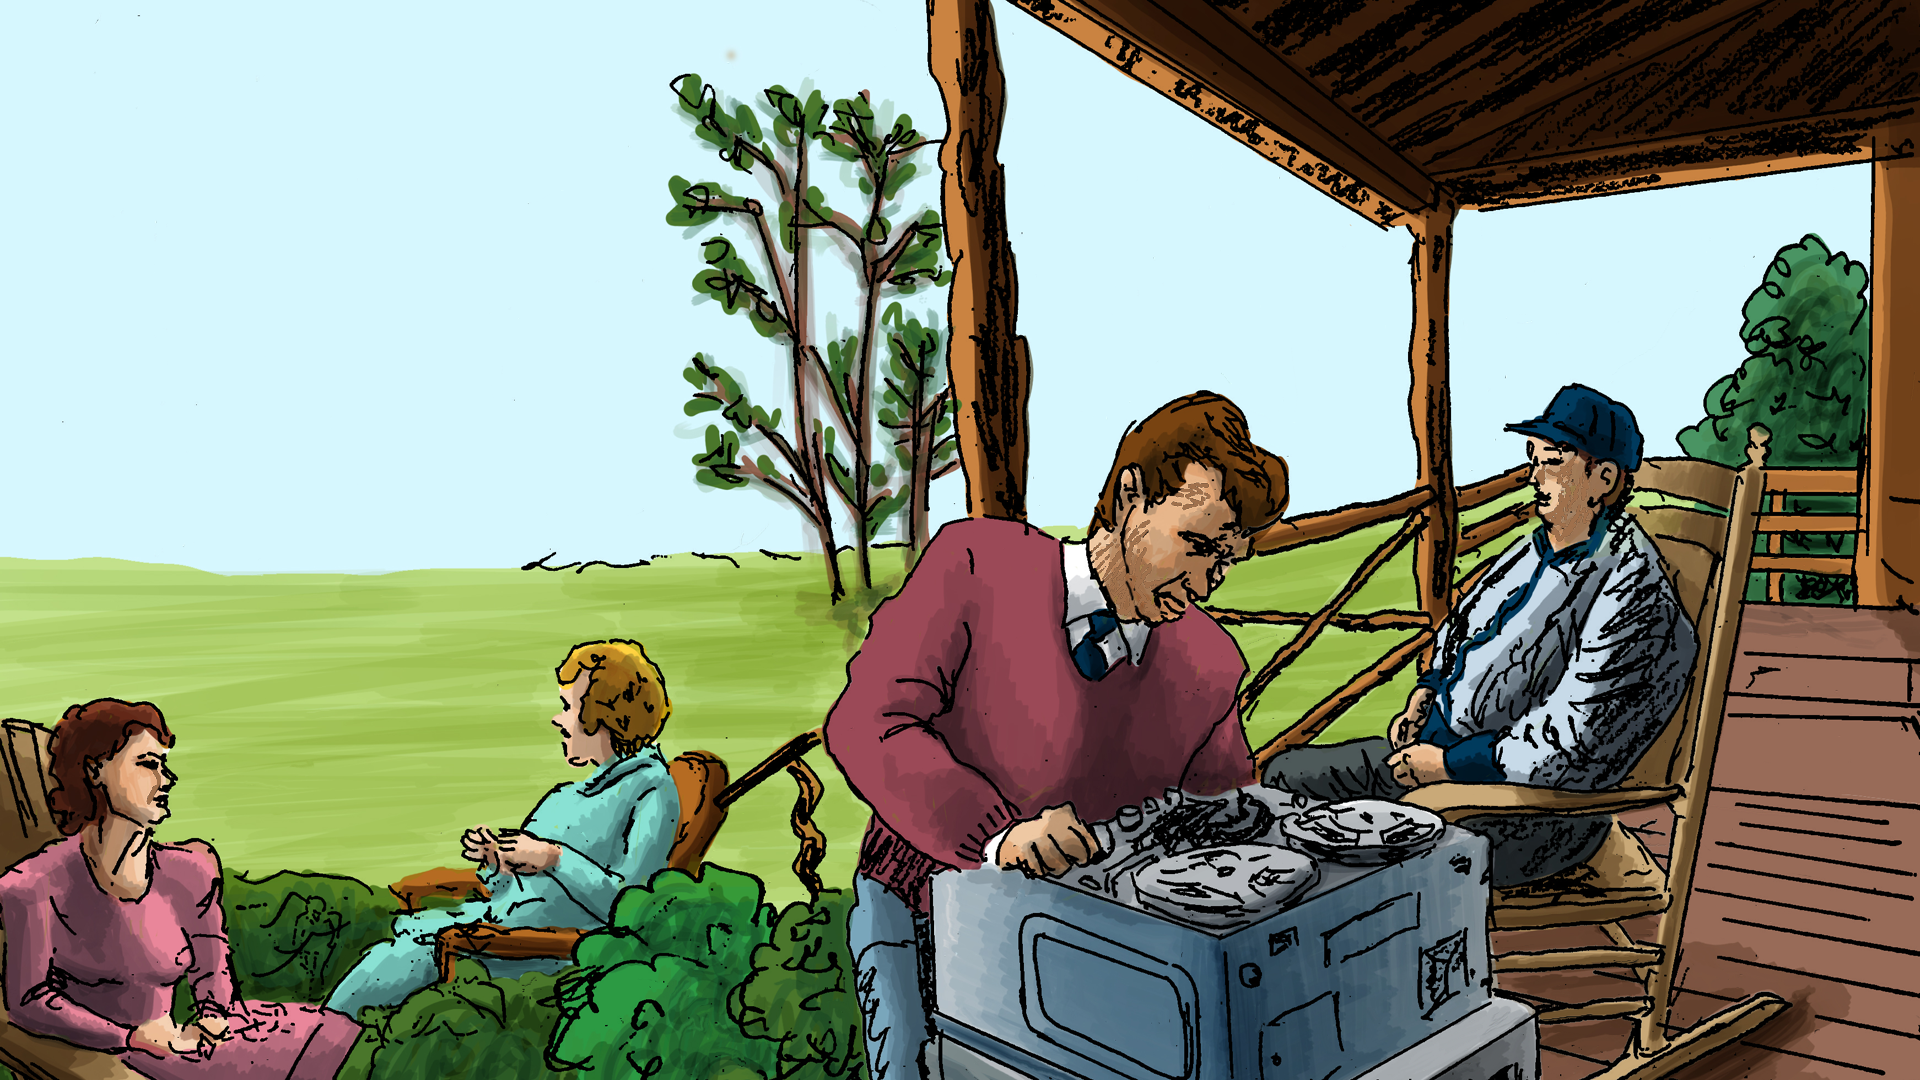 ILL: RM and MINER sit on a house porch as RM uses a tape recorder for interview. In the yard, SHIRLEY and MINER'S WIFE sit chatting as Carina and Miner's grandchildren run around playing.